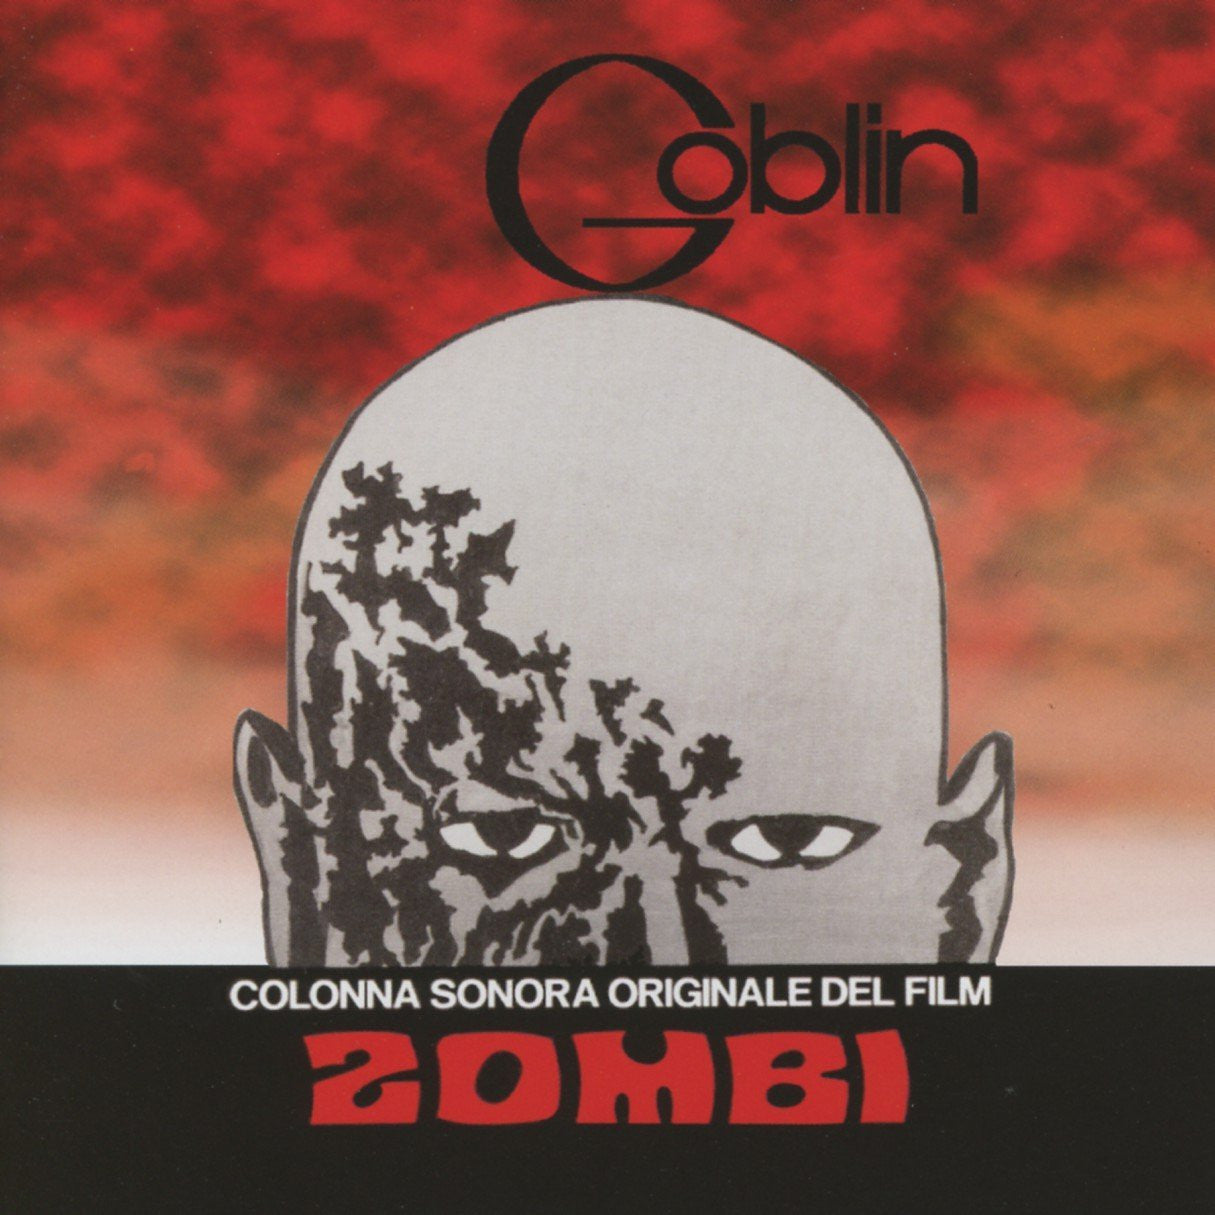 "Goblin - Zombi - New Vinyl Record 2010 Reissue 180 gram, Argento's Euro cut of ""Dawn of the Dead"" scored by Goblin - Prog / Ambient / Soundtrack"